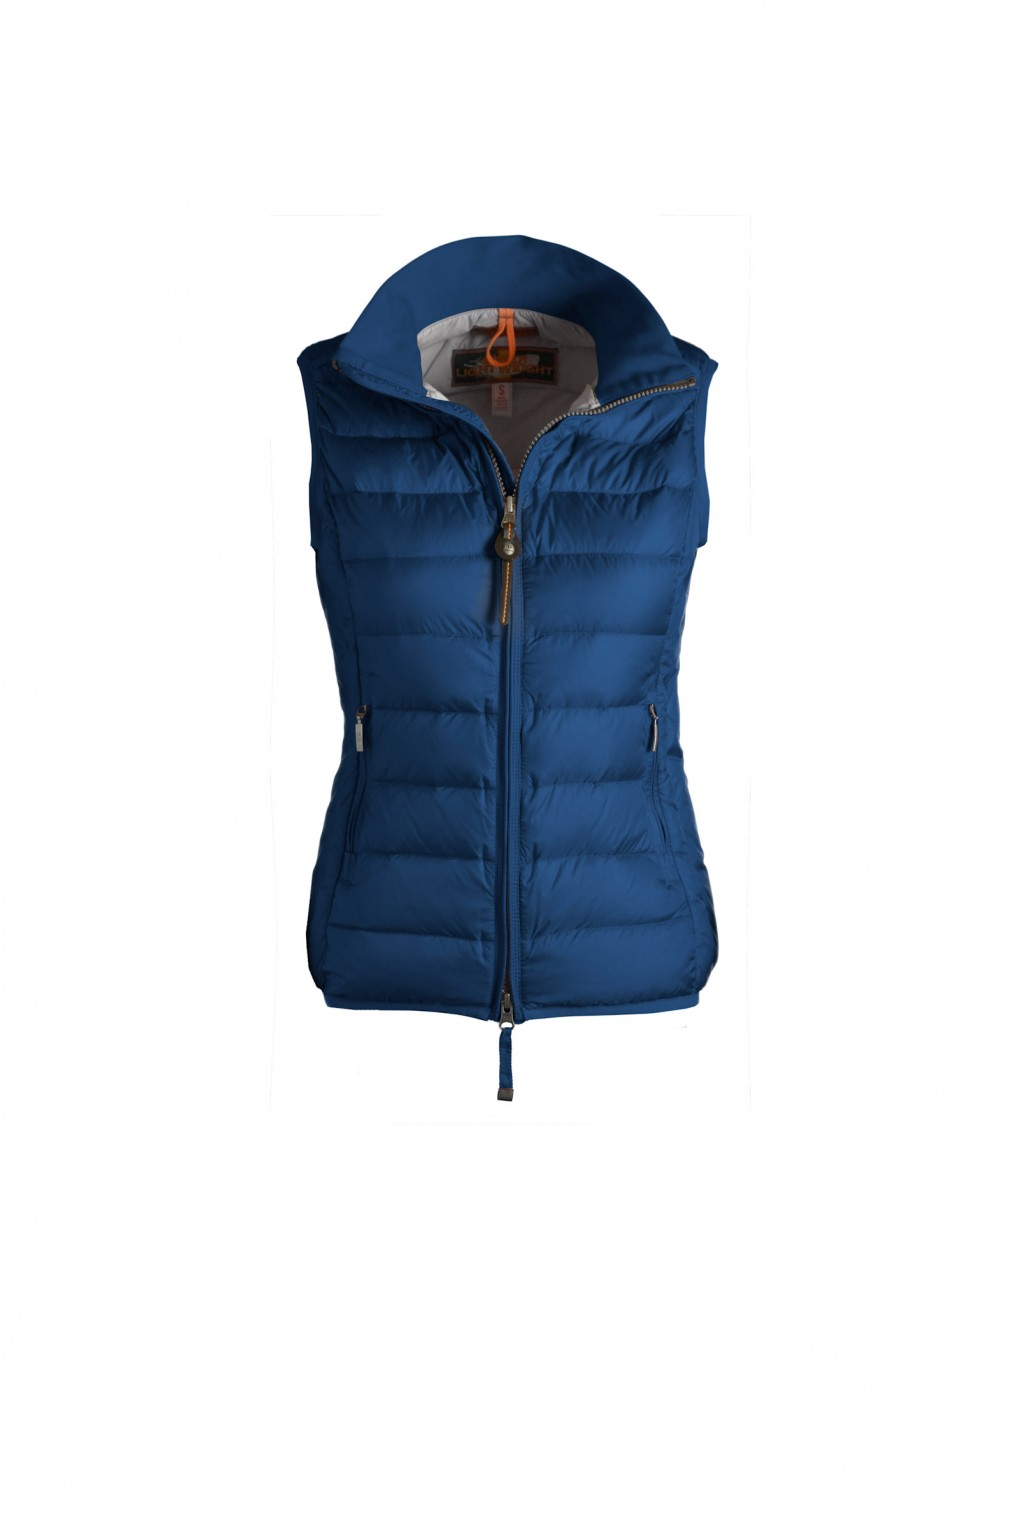 parajumpers DODIE6 woman outerwear Ocean